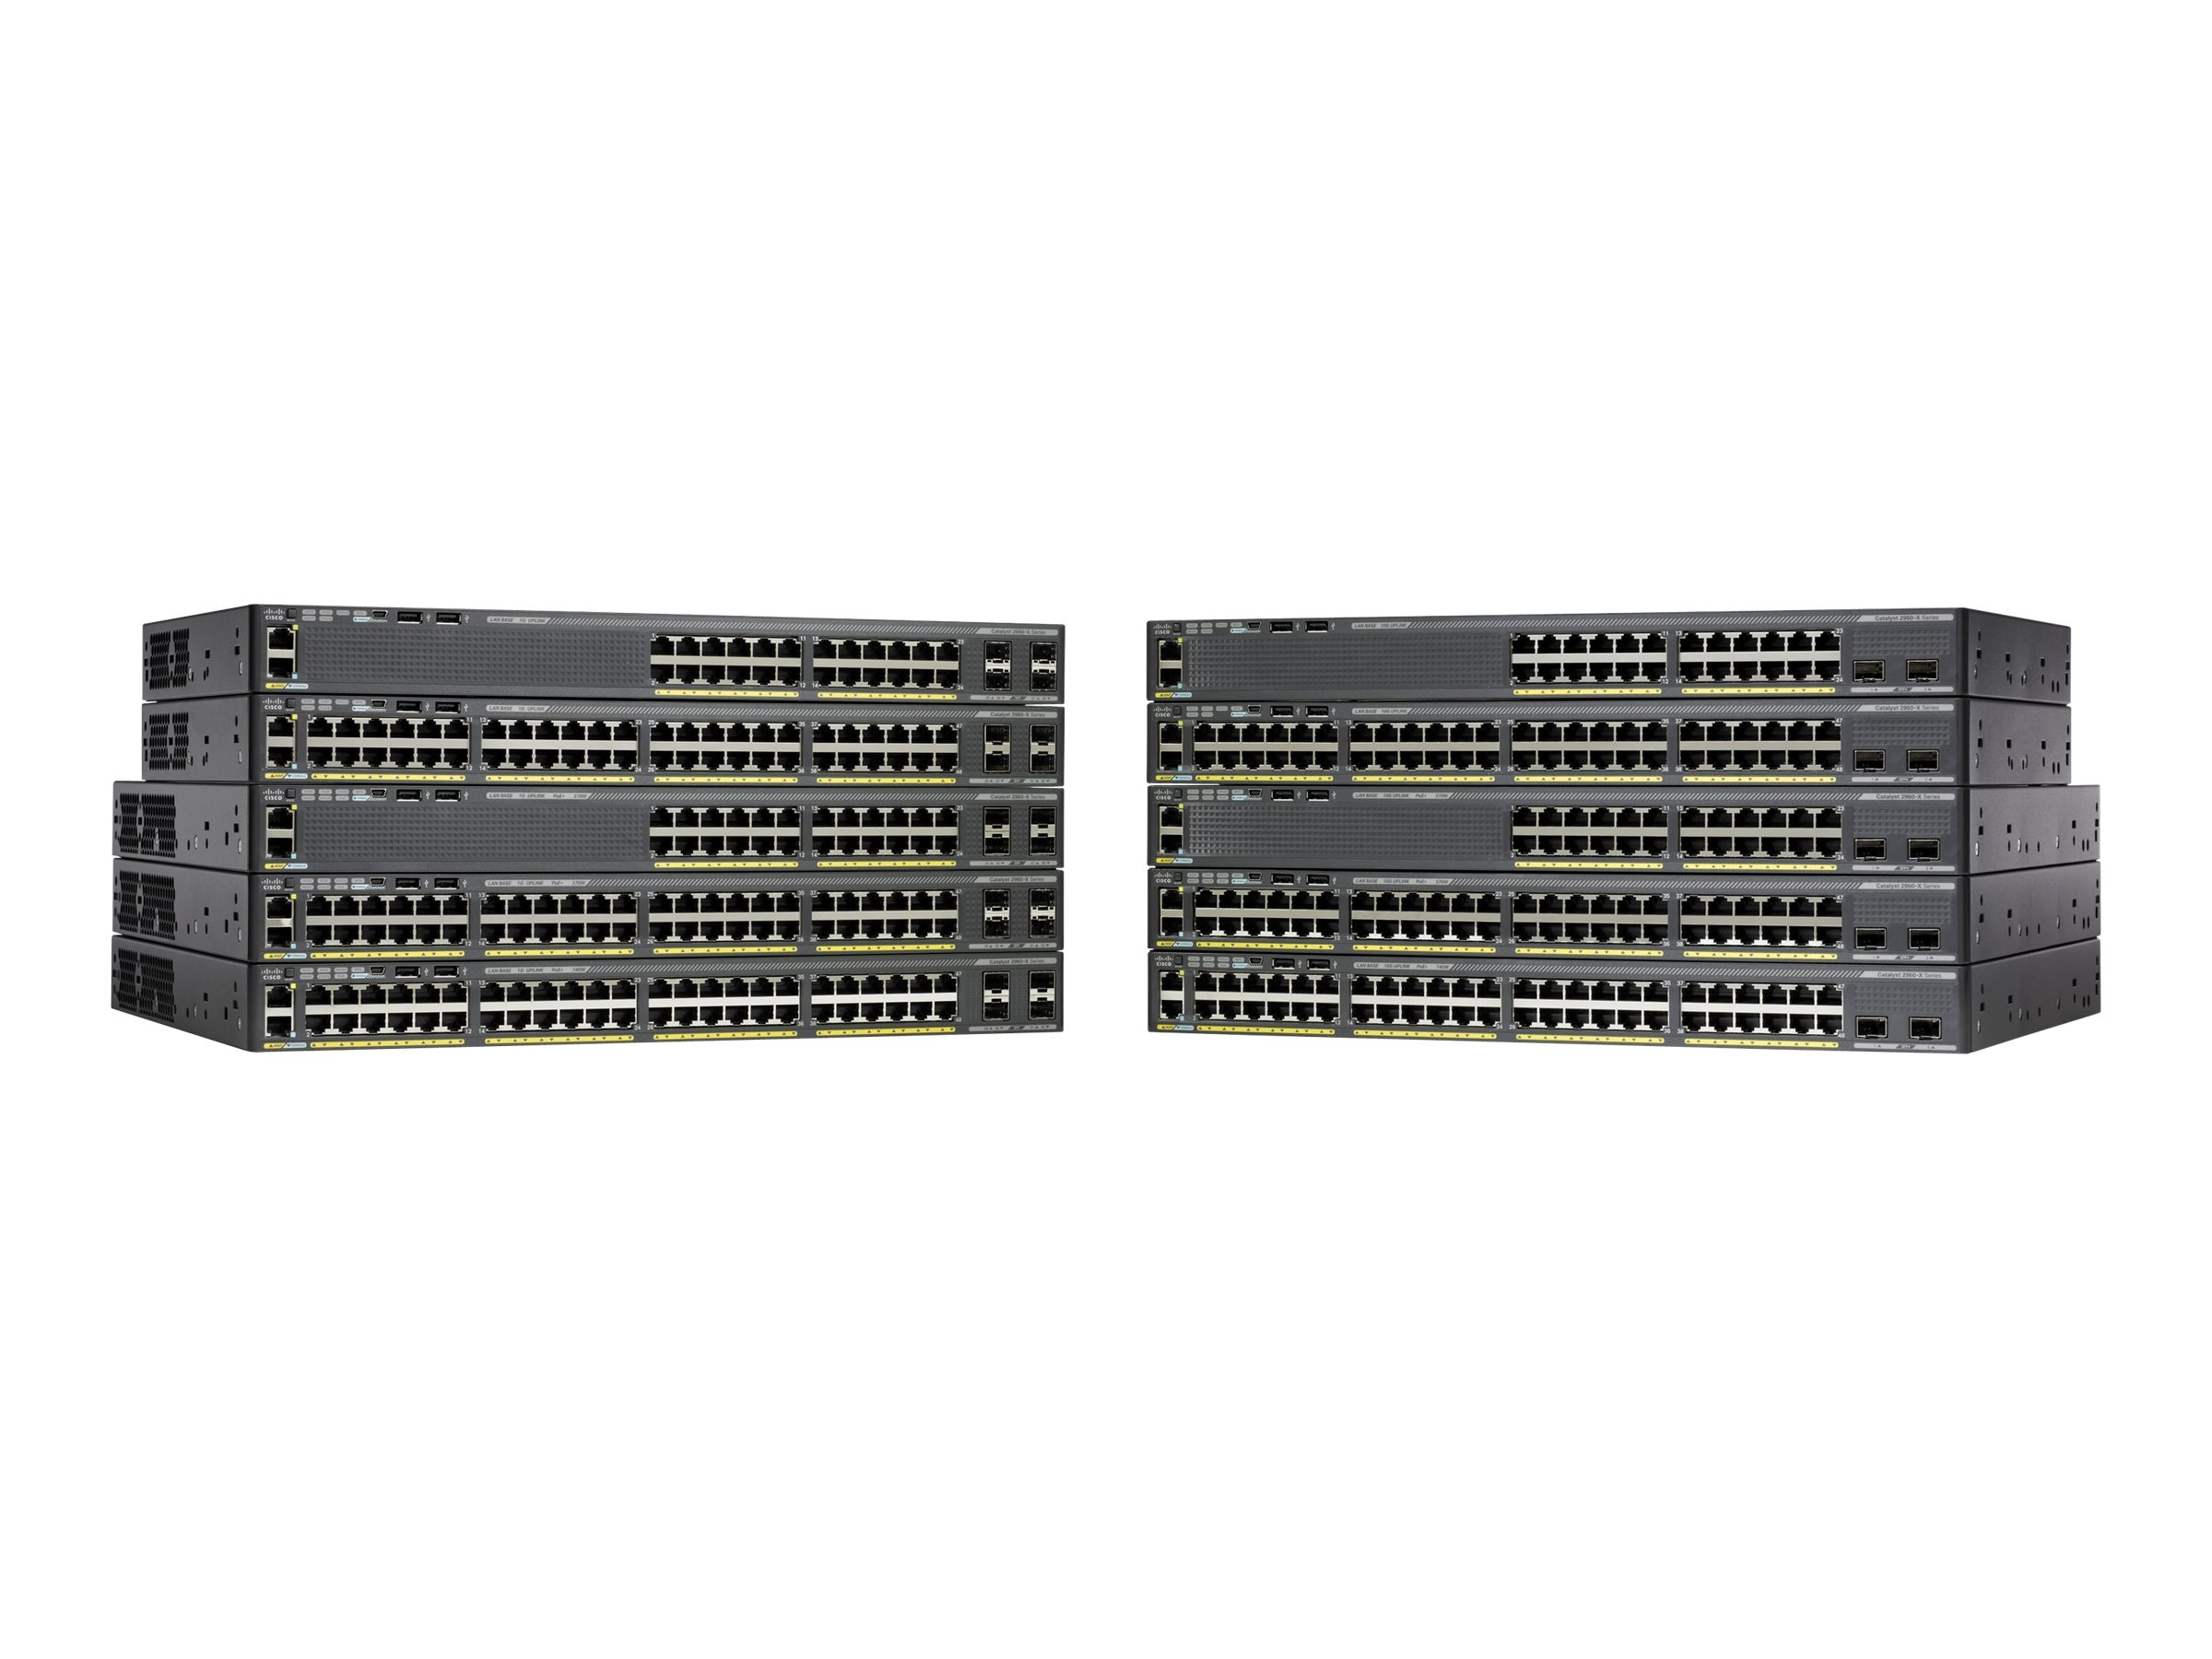 Cisco Catalyst 2960-XR 48 GIGE PoE  370W 4 X 1G, WS-C2960XR-48LPS-I